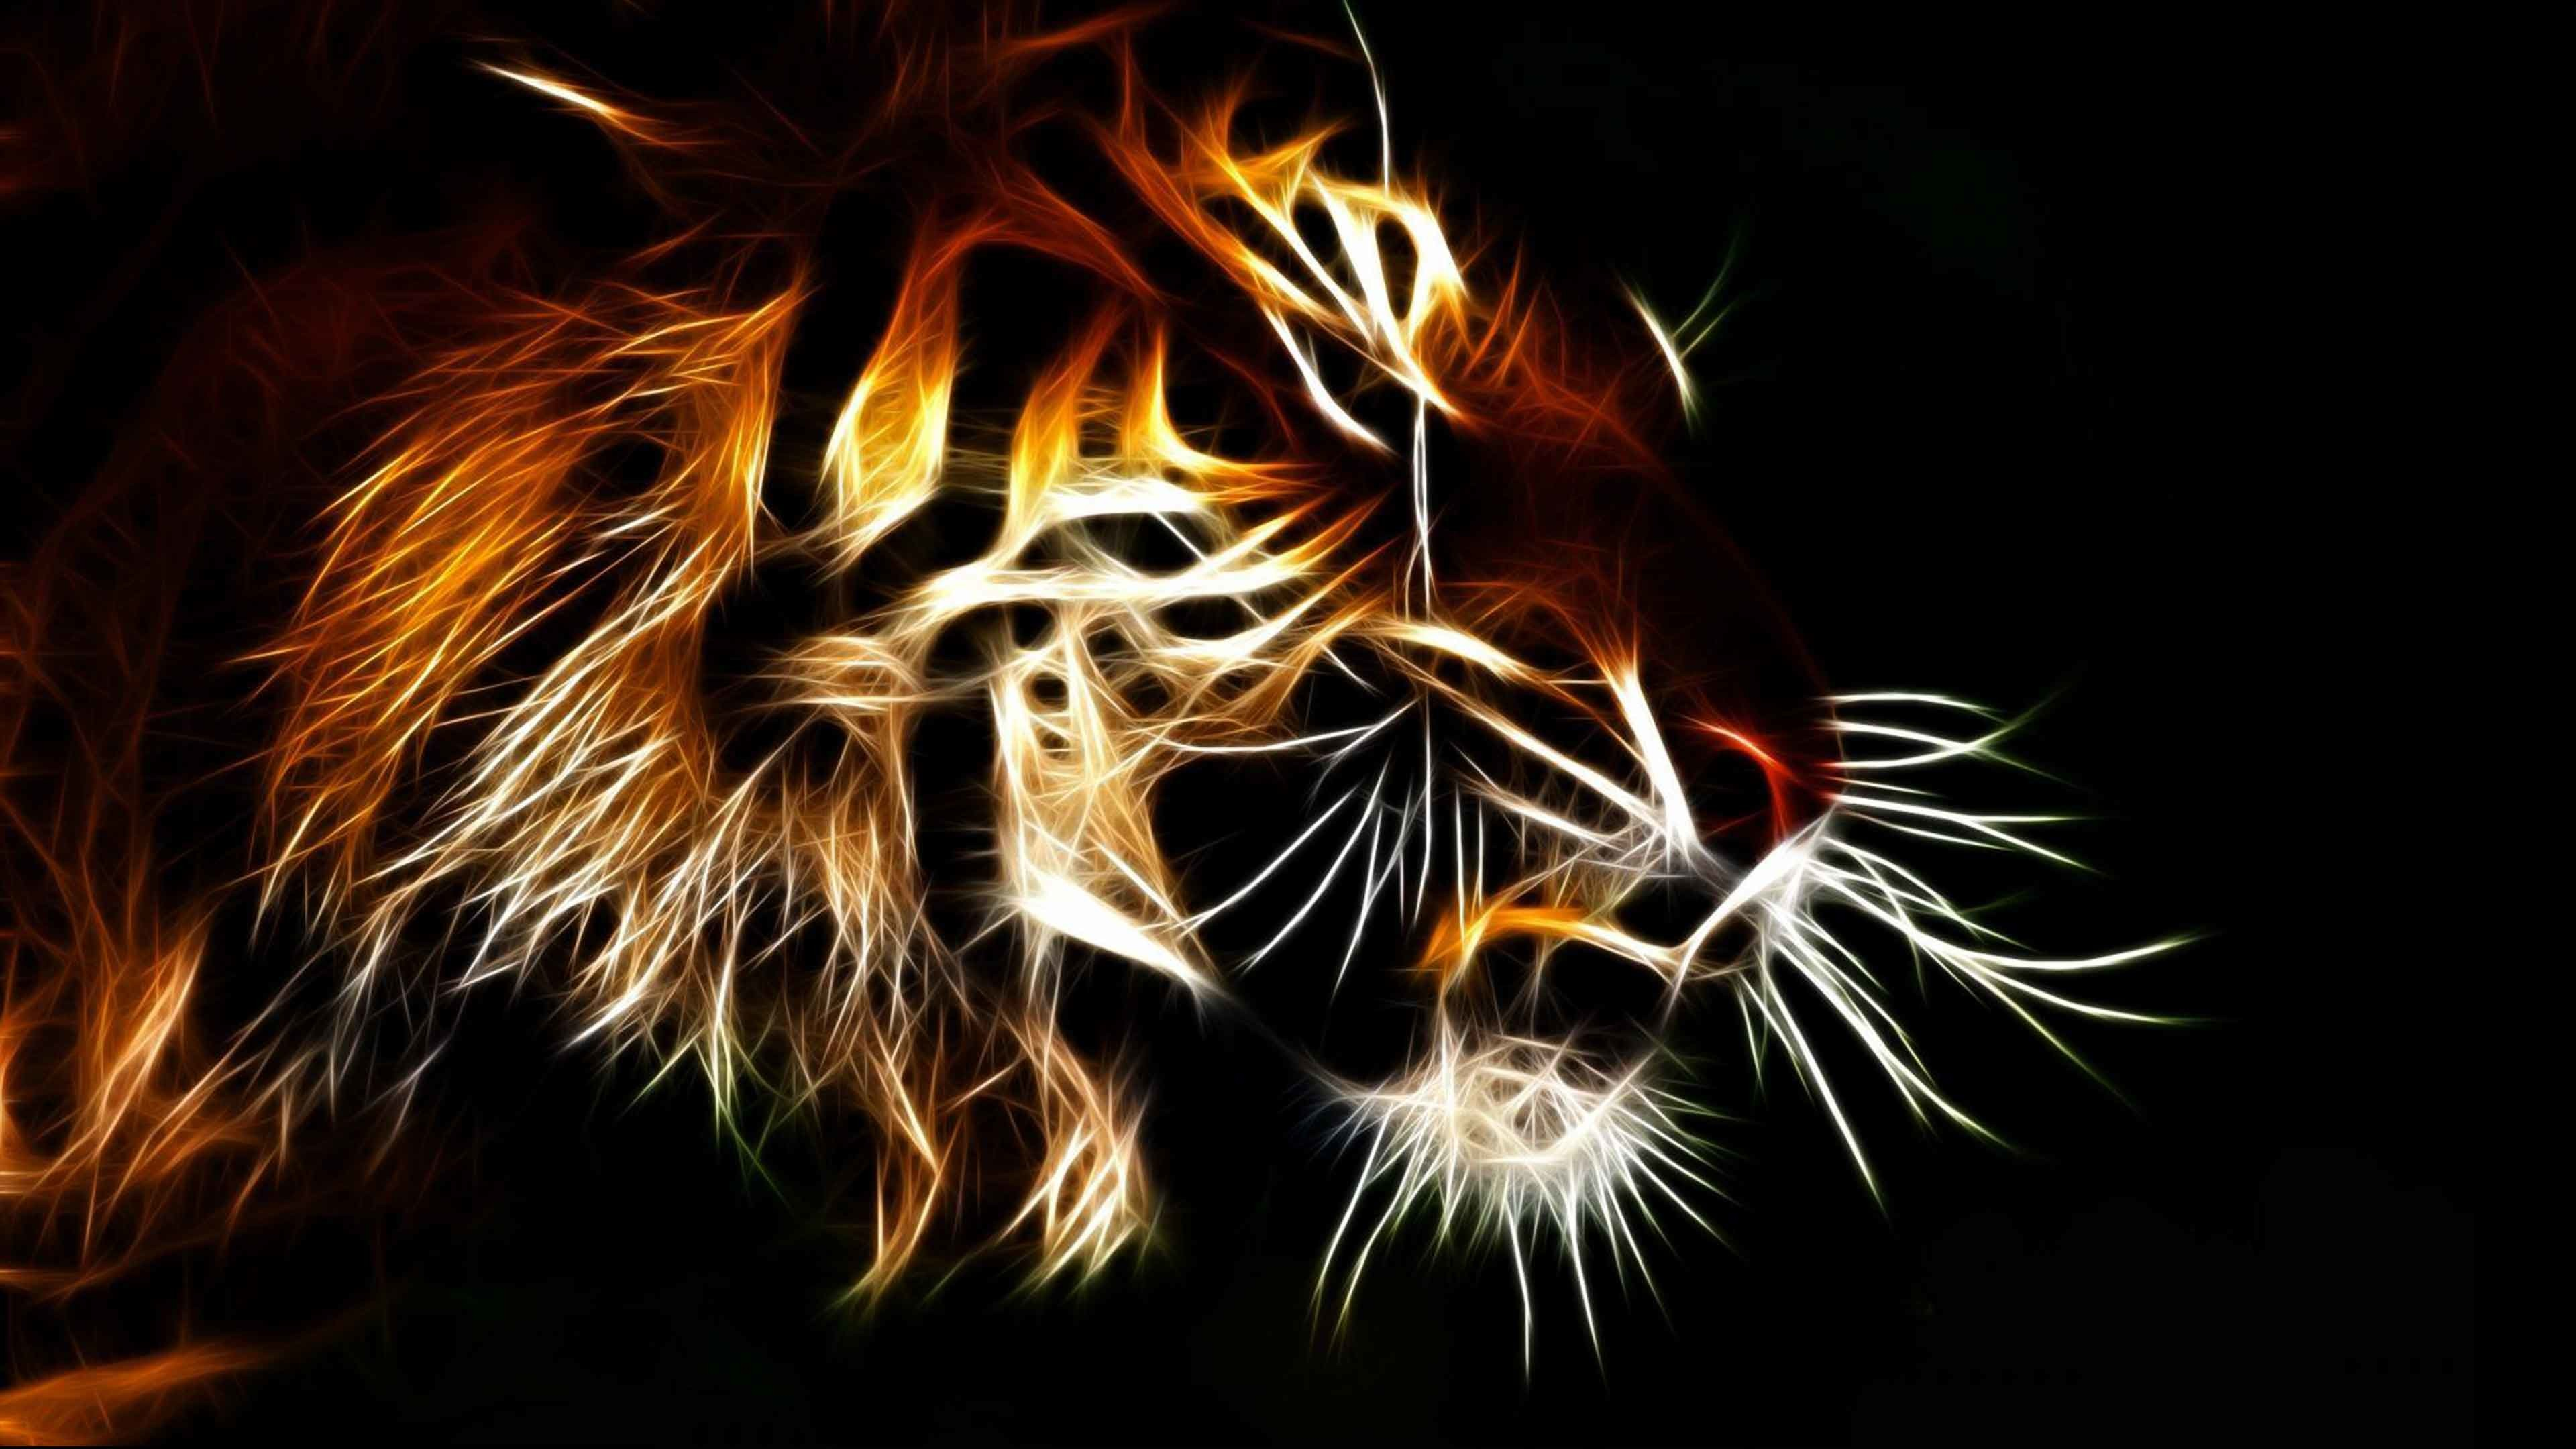 Res: 3840x2160, 3d Animated Tiger Wallpapers